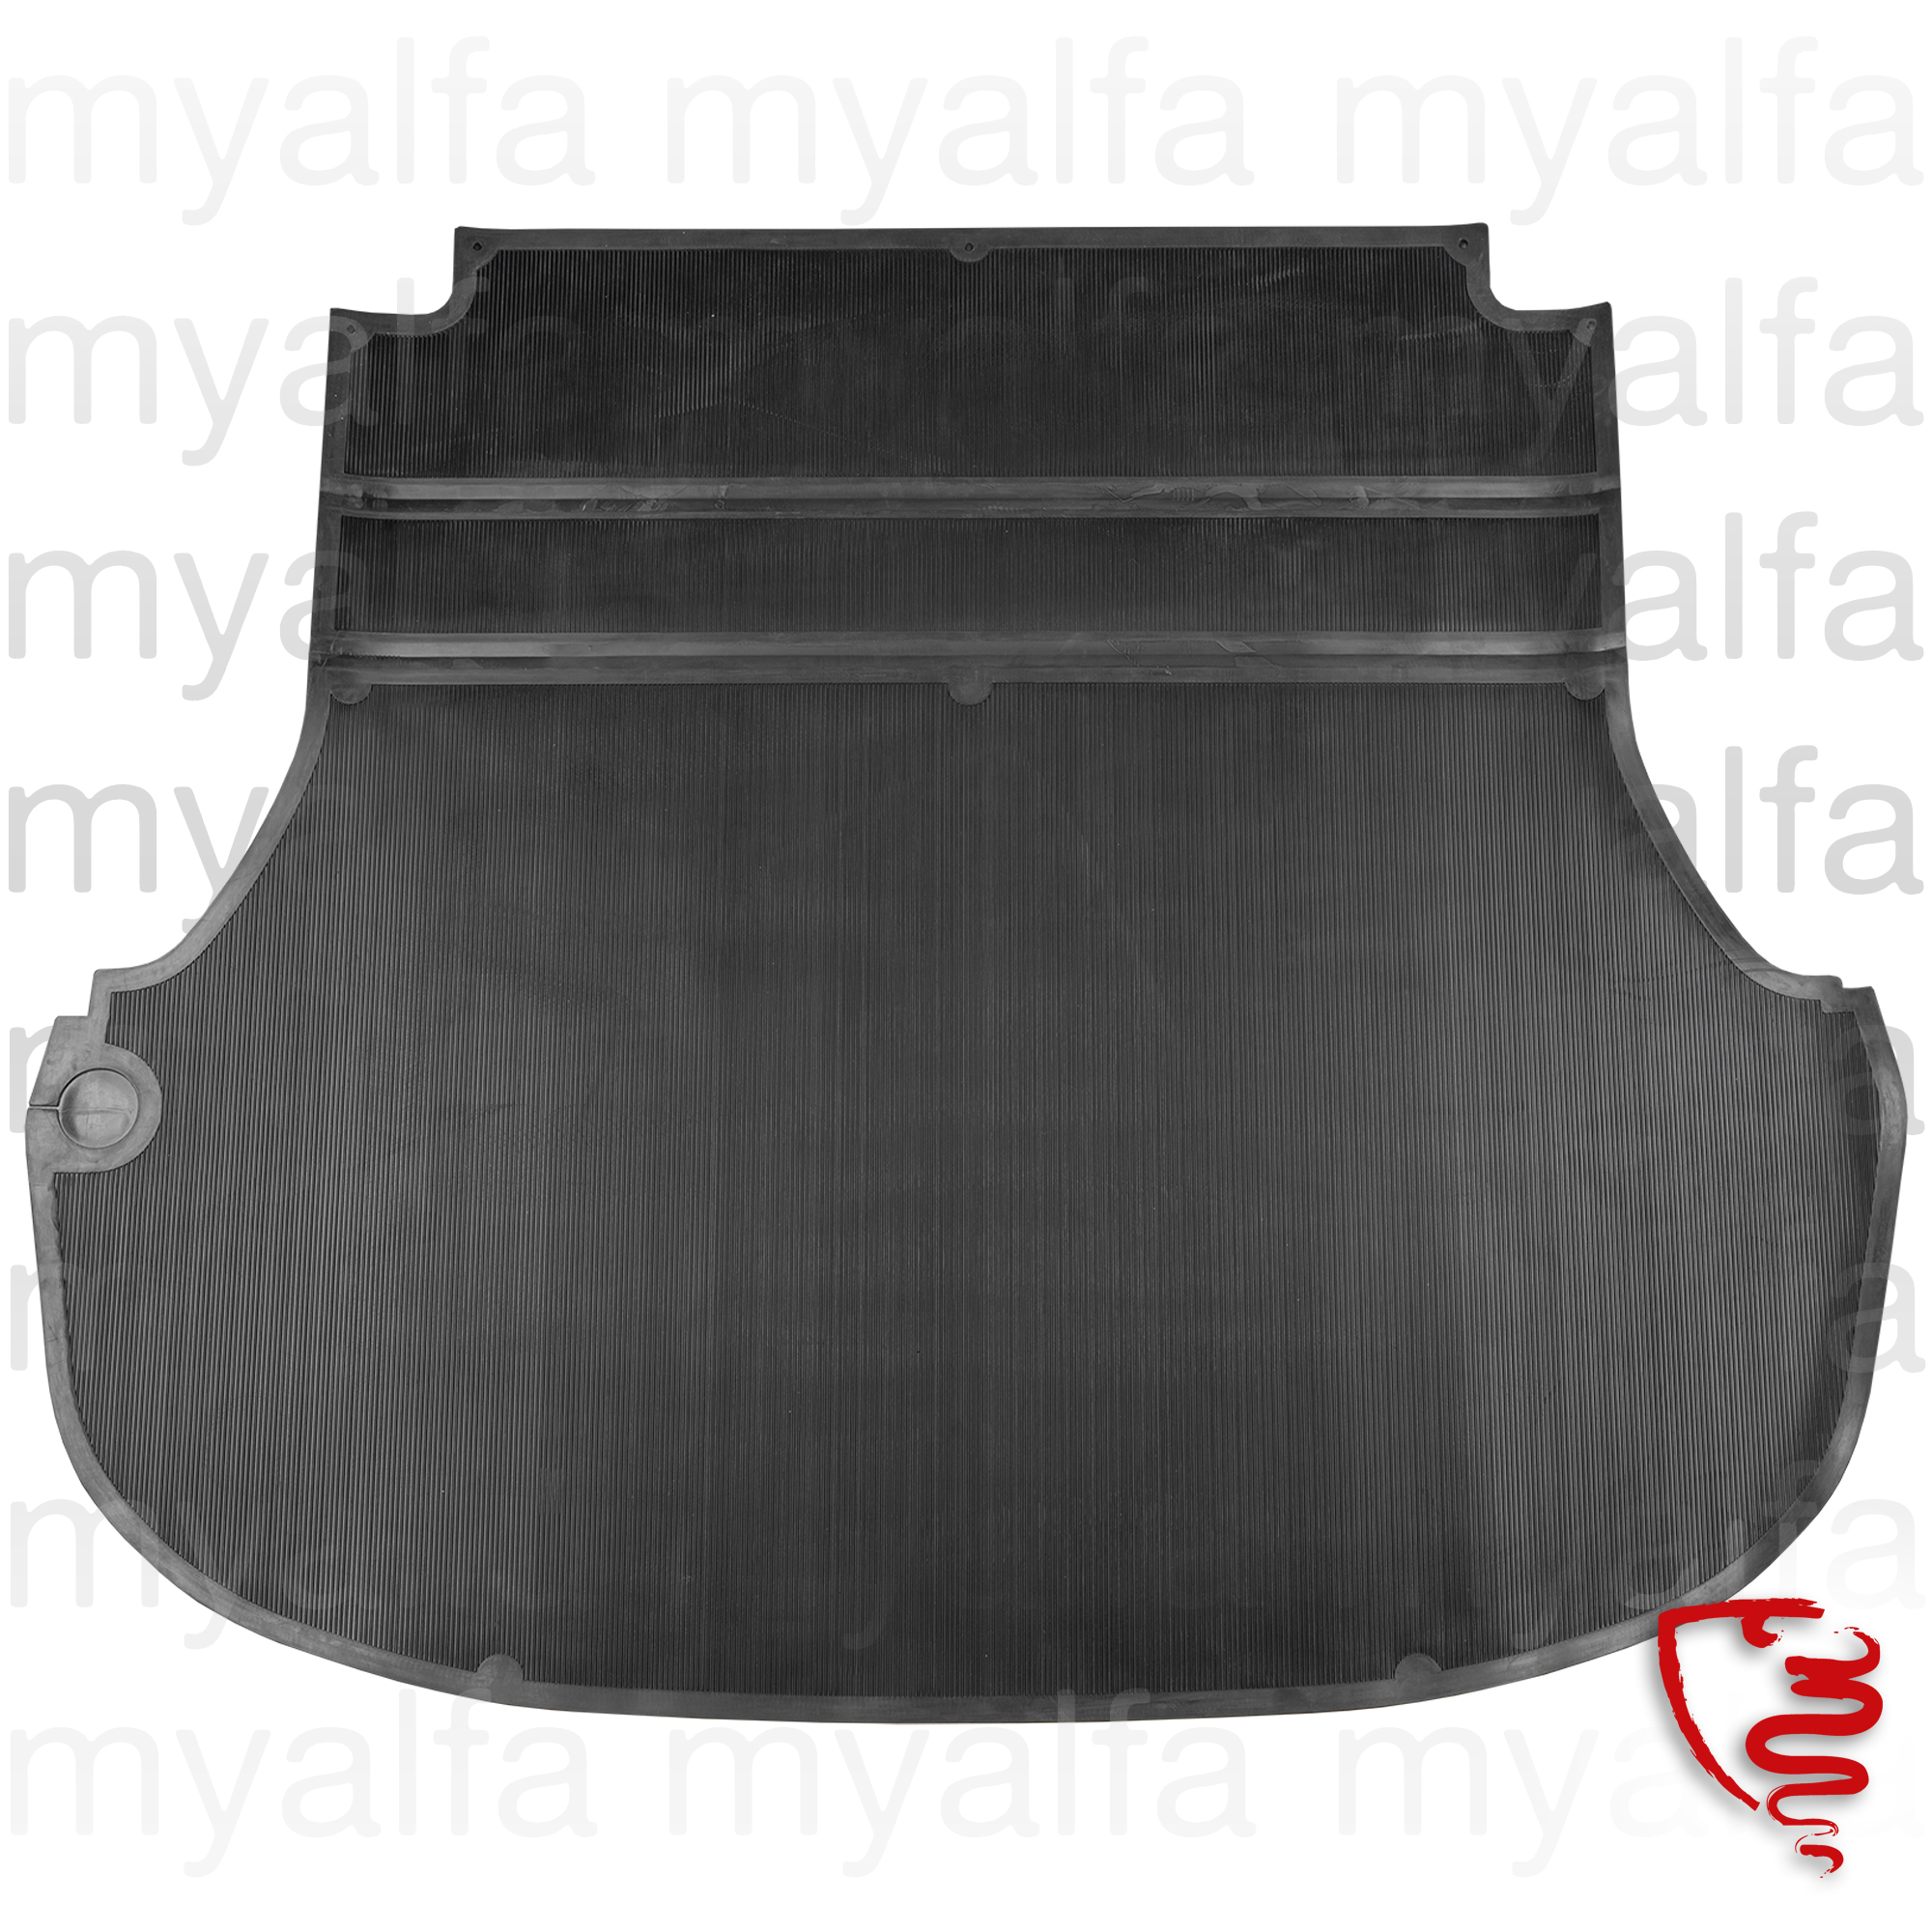 rubber mat Spider 1966-69 chafer suitcase for 105/115, Spider, Interior, Flooring, Rubber mats